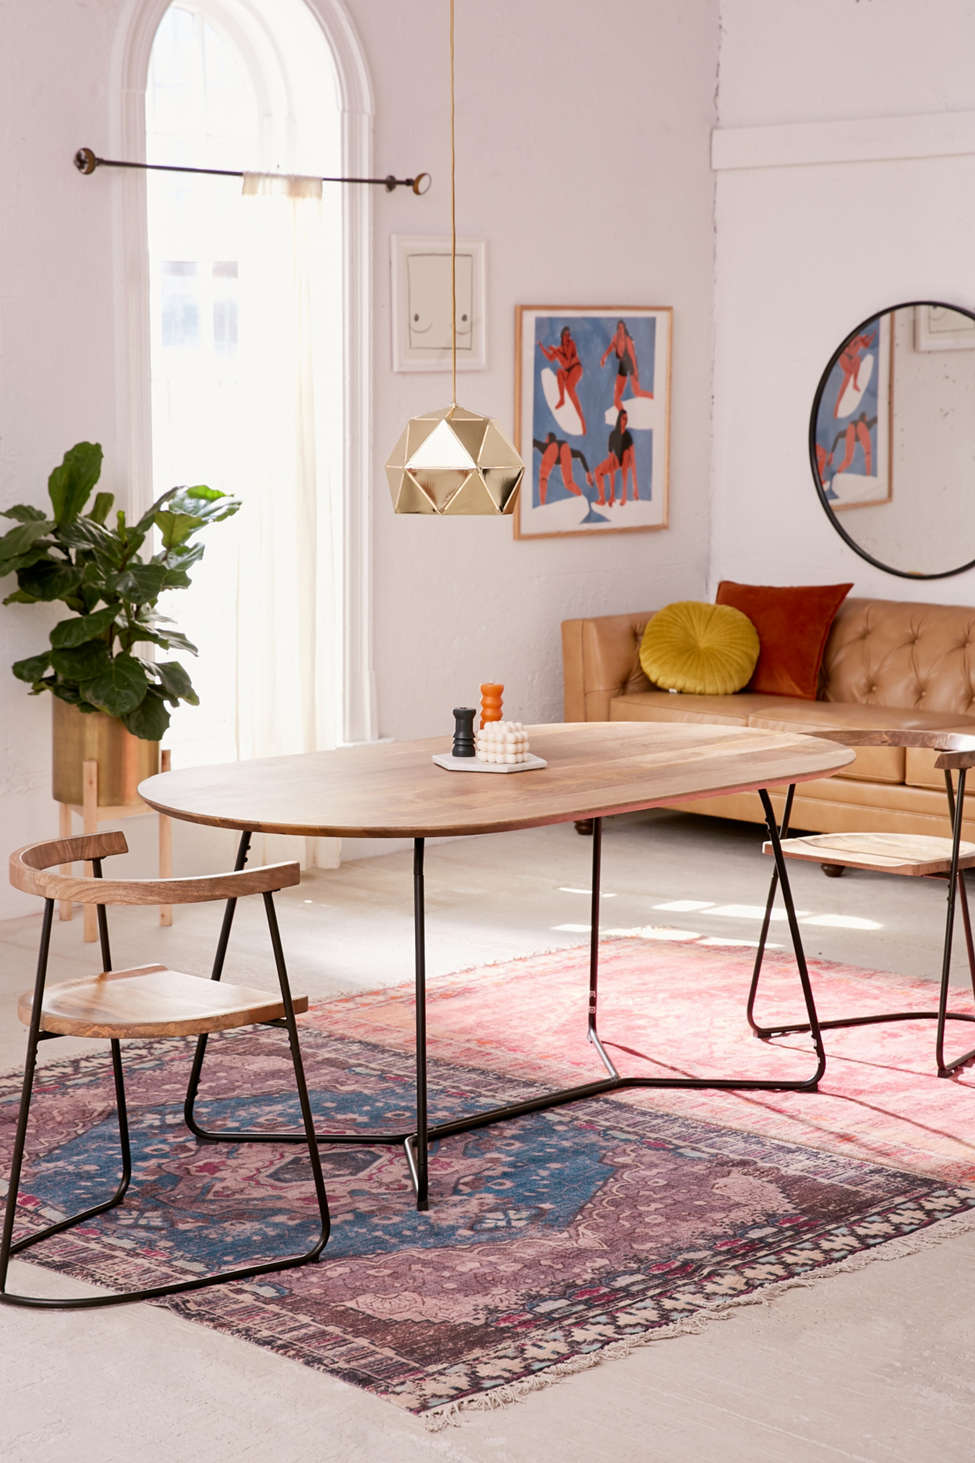 Slide View: 1: Myta Dining Table